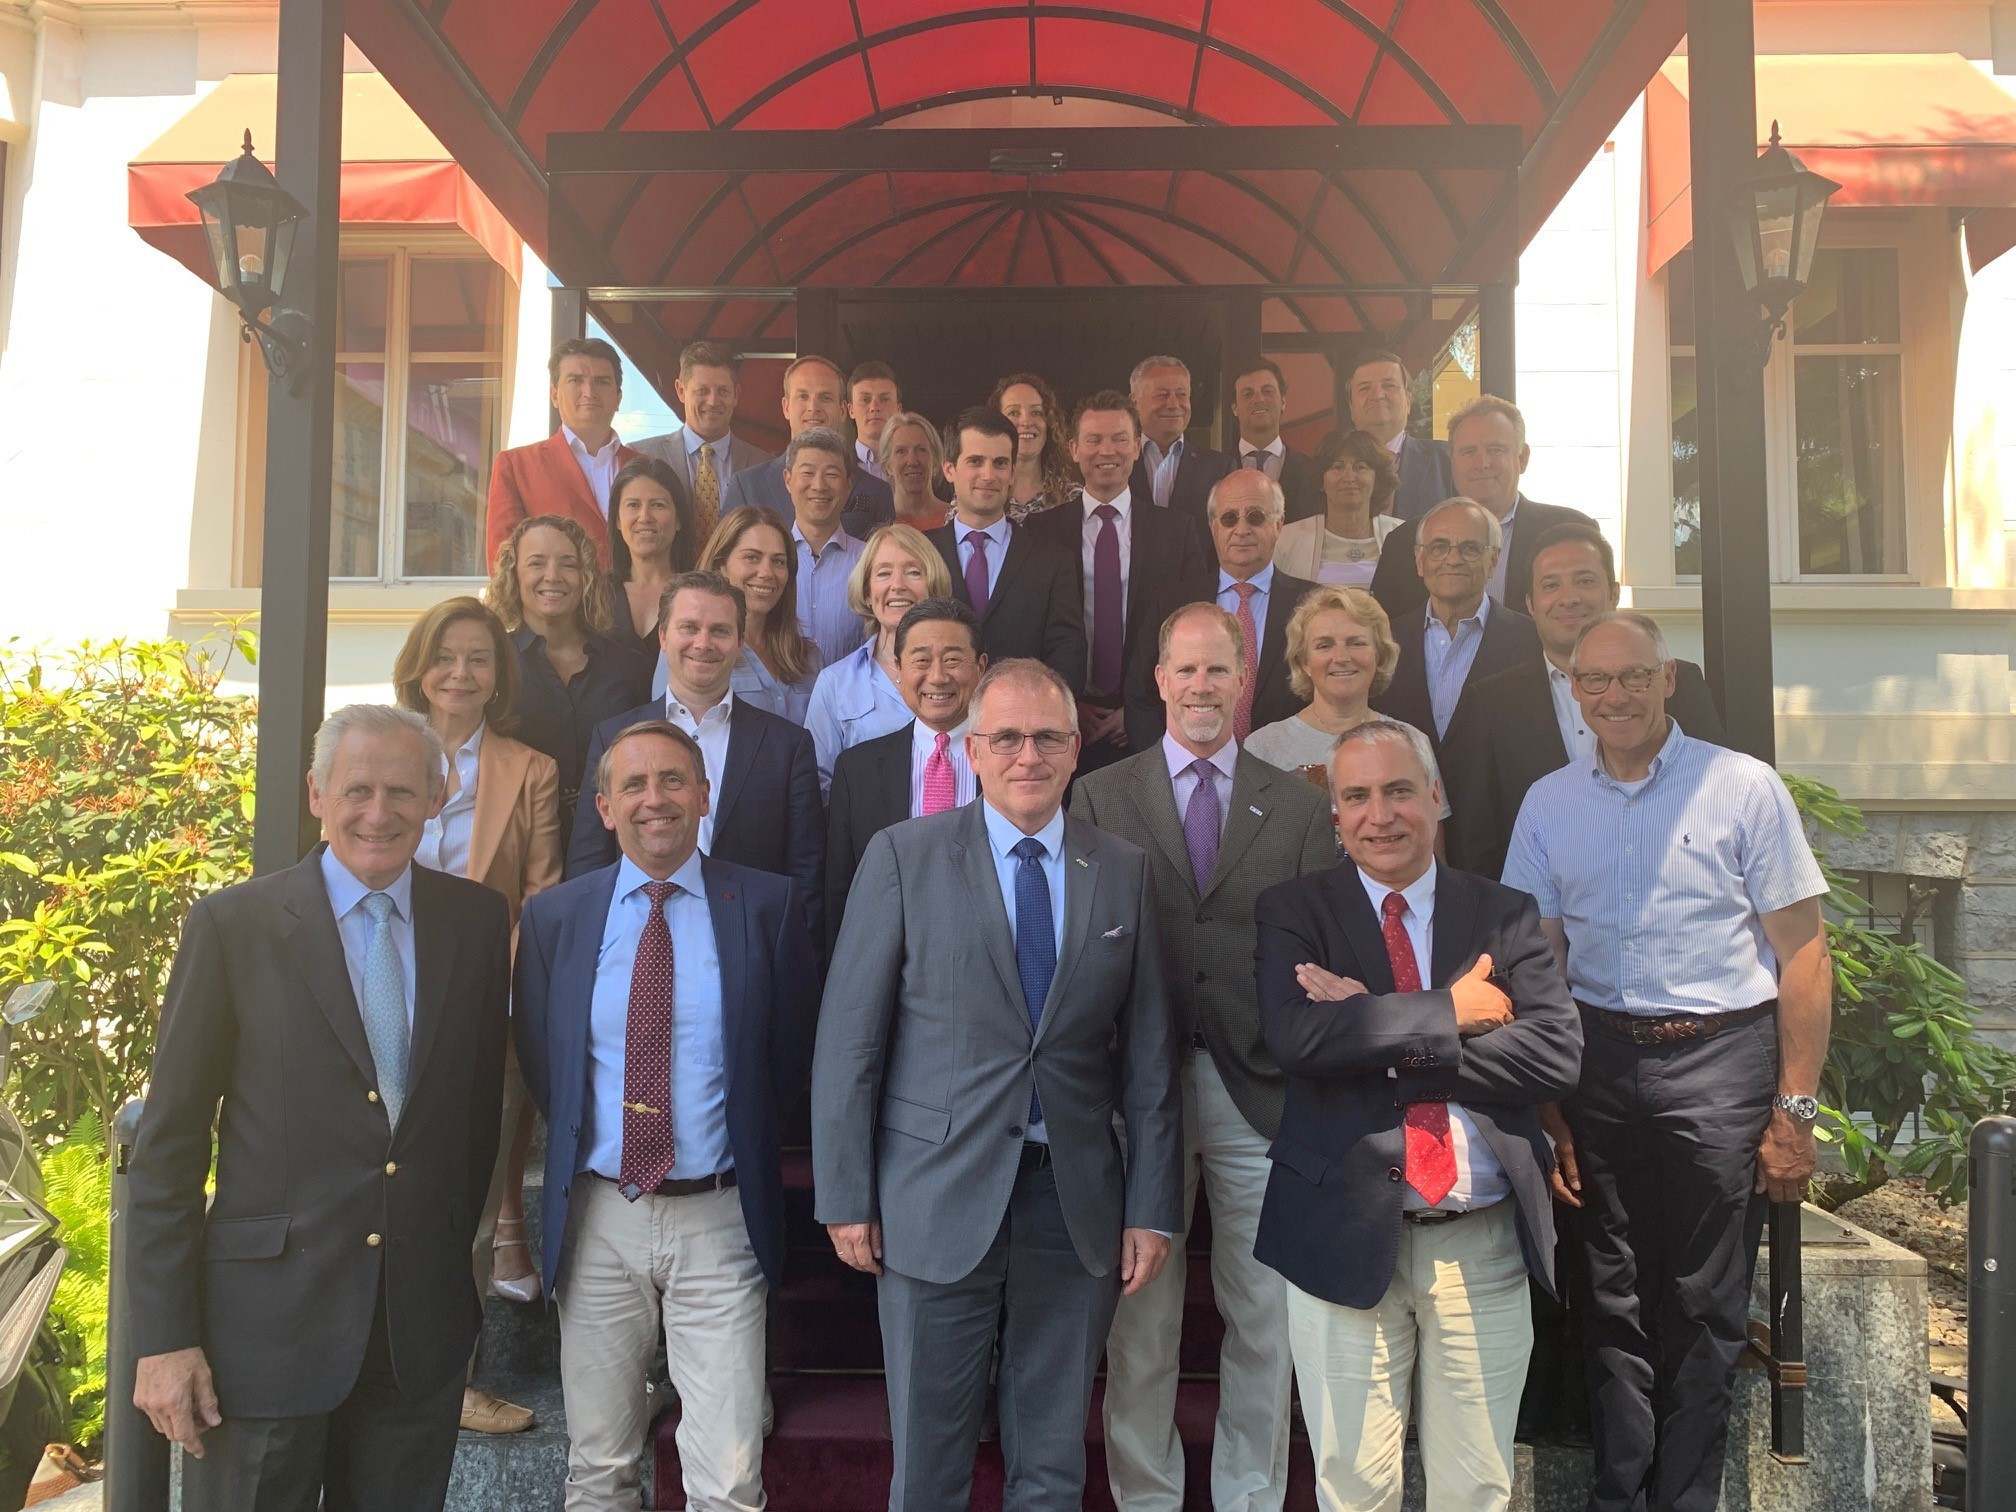 Equestrian chiefs met in Lausanne to discuss the future of jumping ©FEI